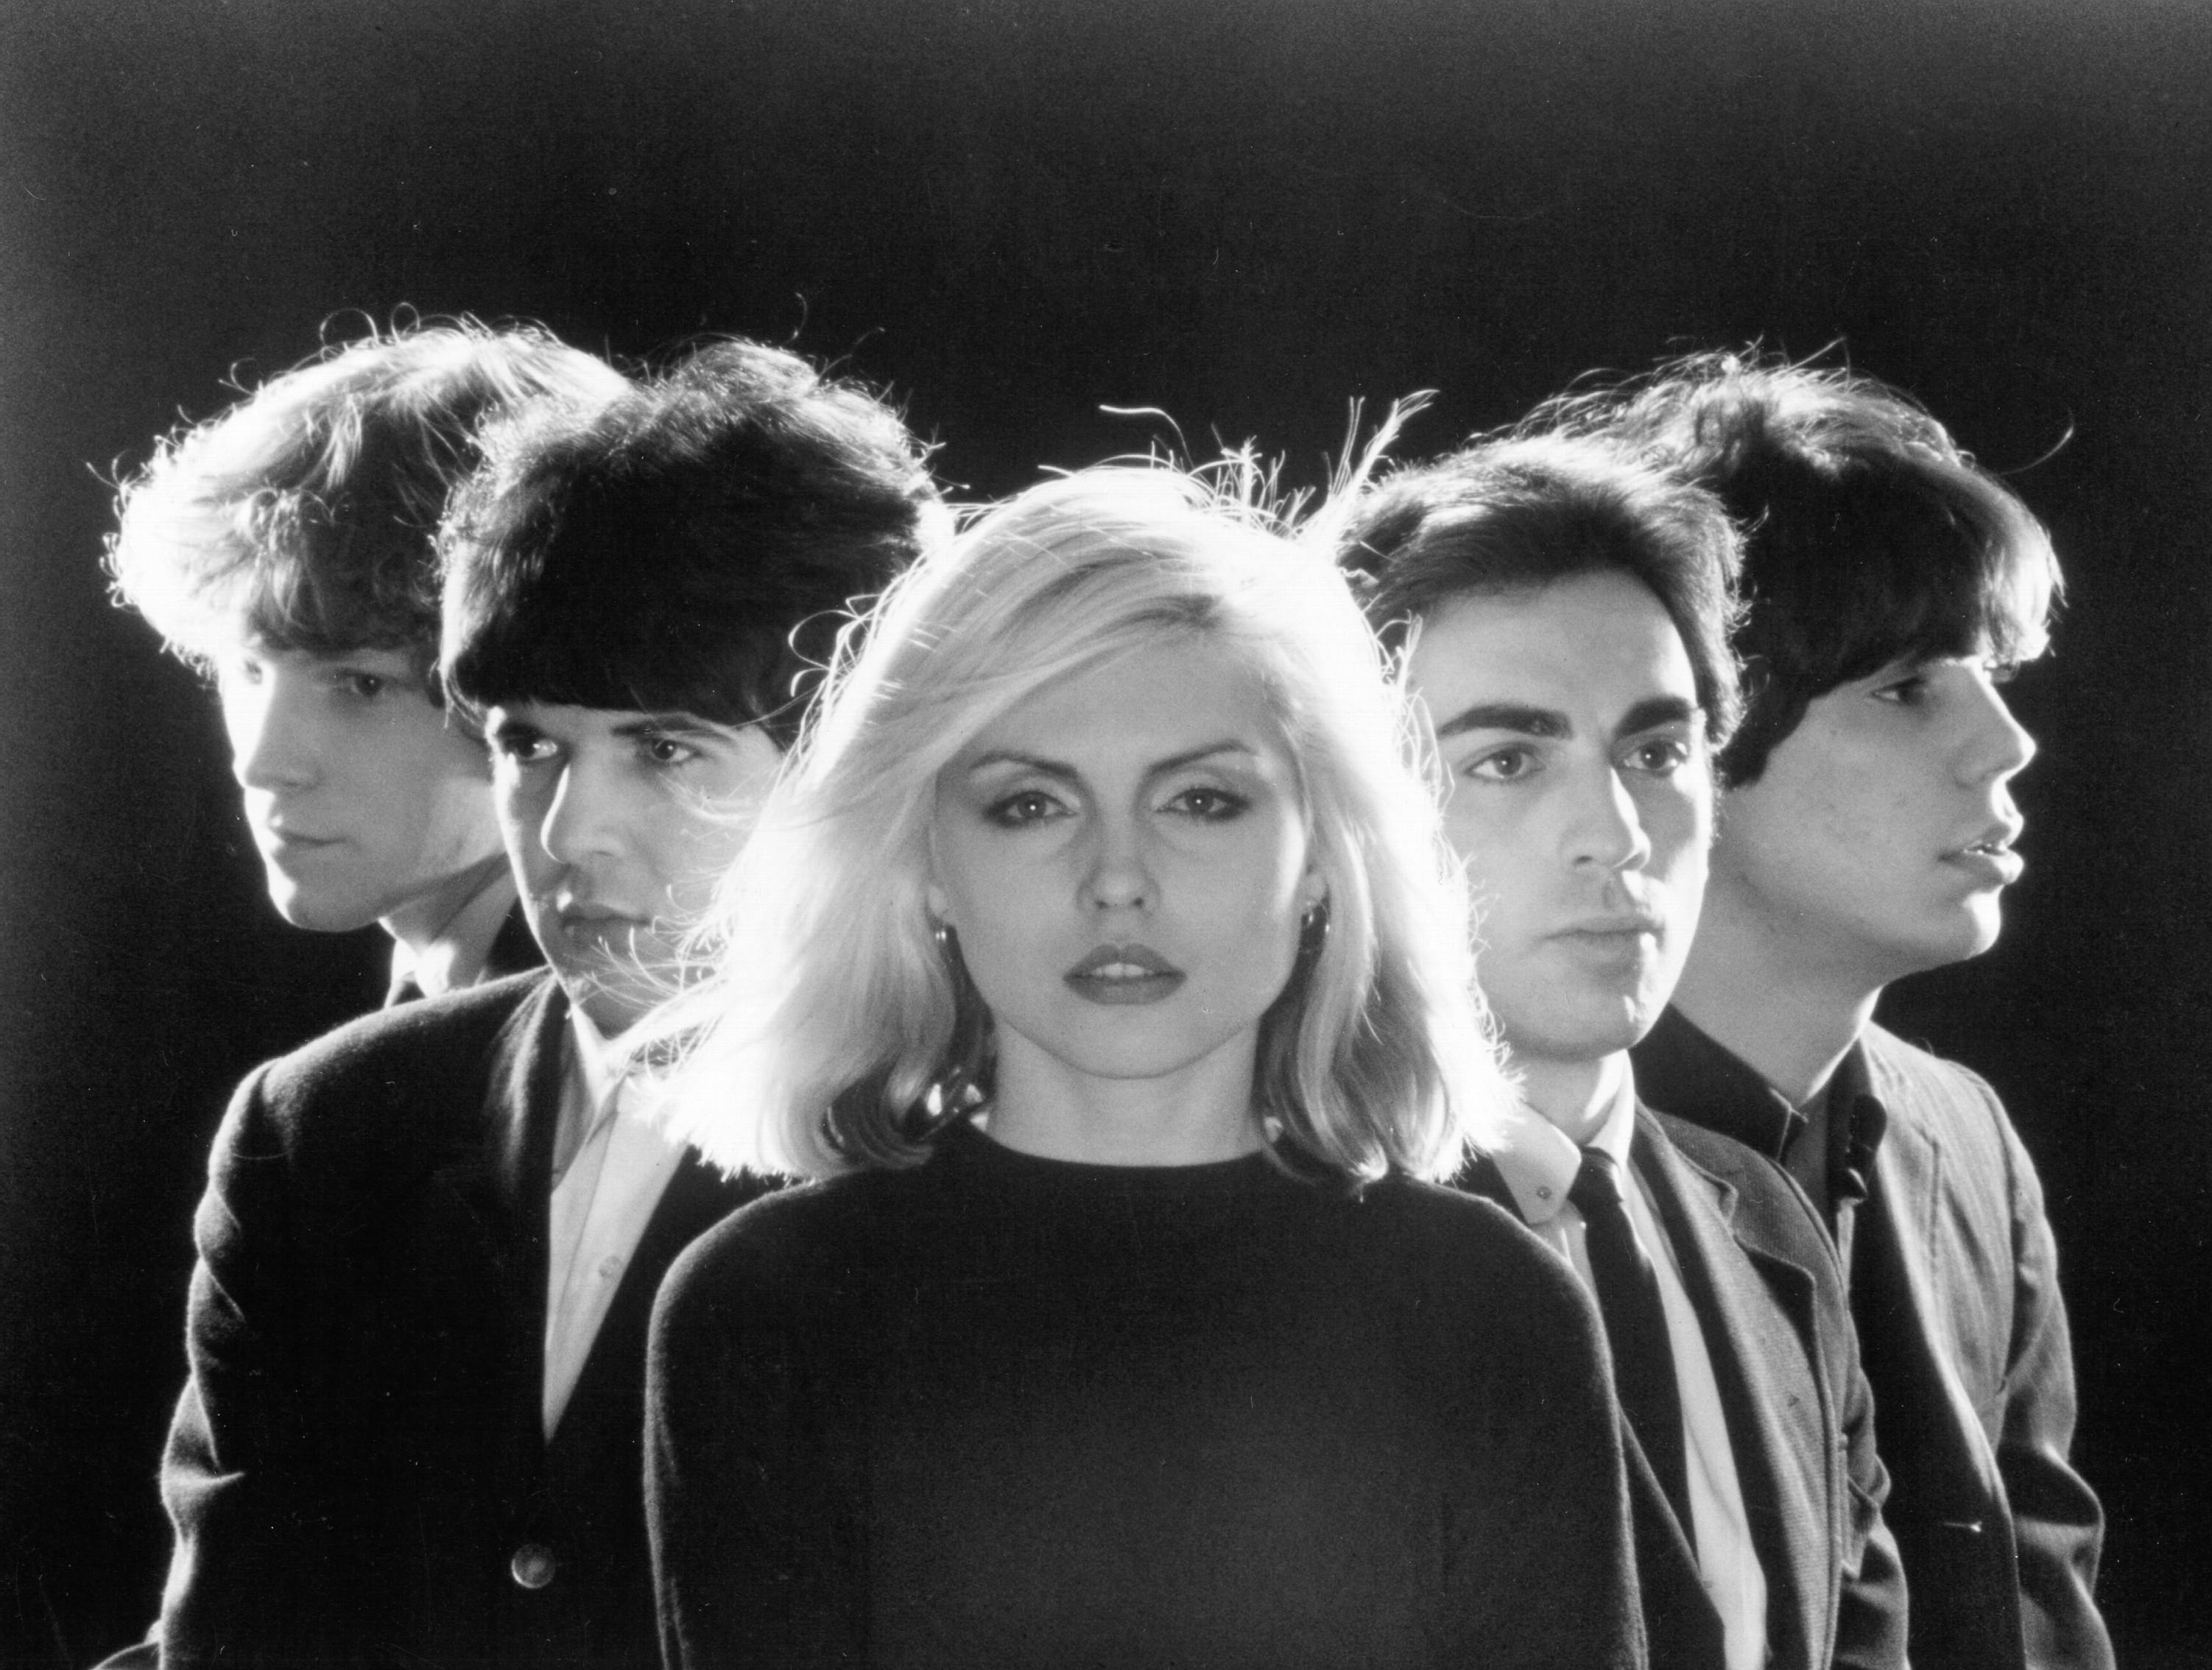 blondie-heart-of-glass-six-alternate-versions-numero-group-deluxe-ep